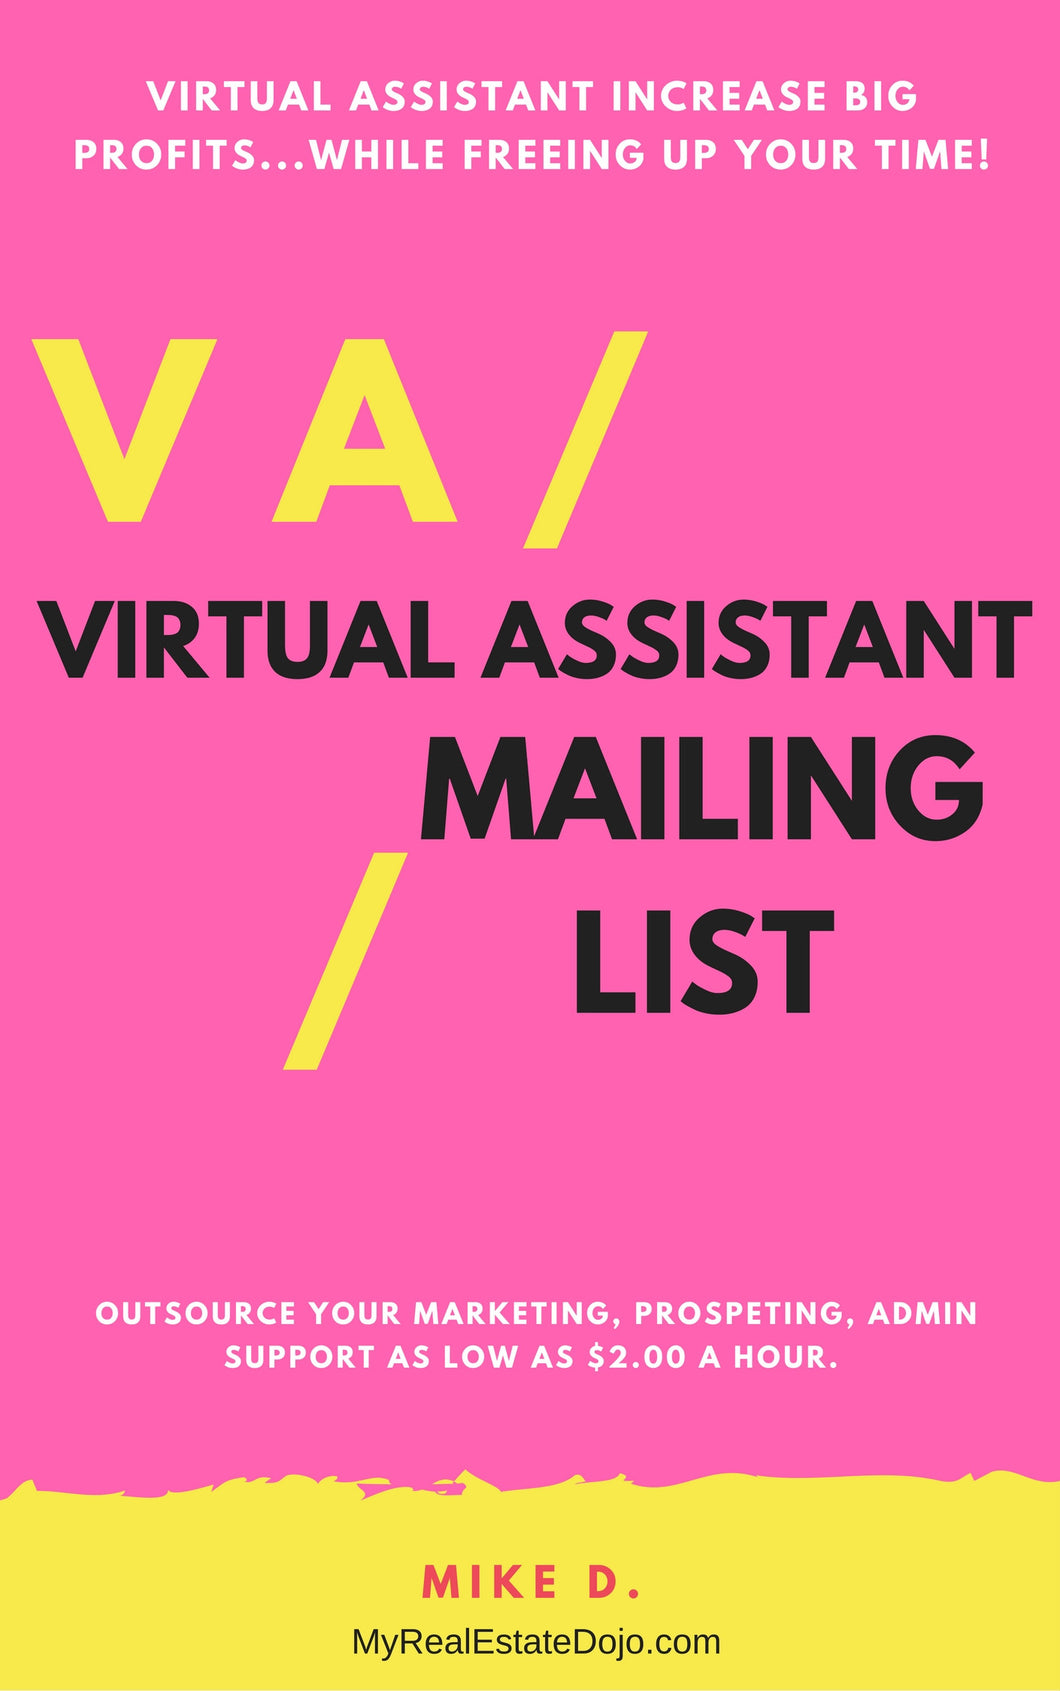 Real Estate VIRTUAL ASSISTANT MAILING LIST